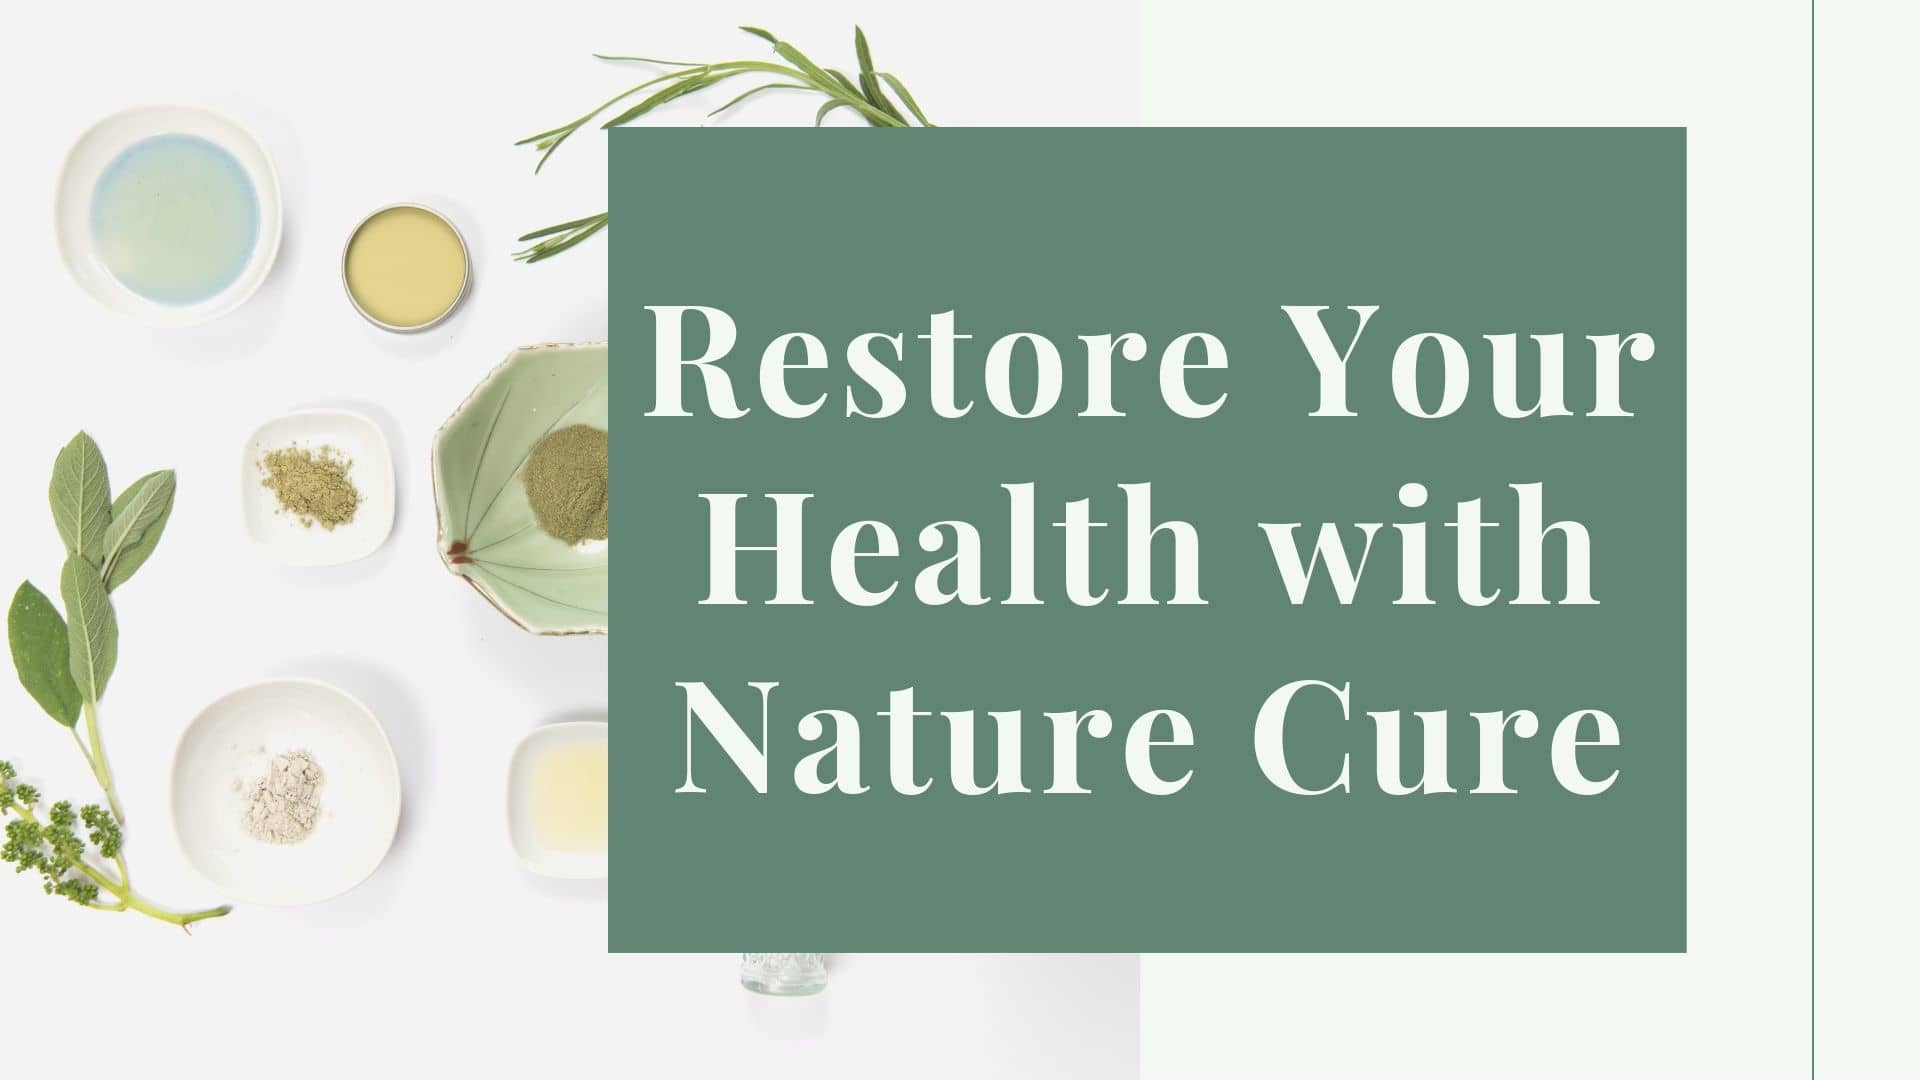 Restore Your Health with Nature Cure